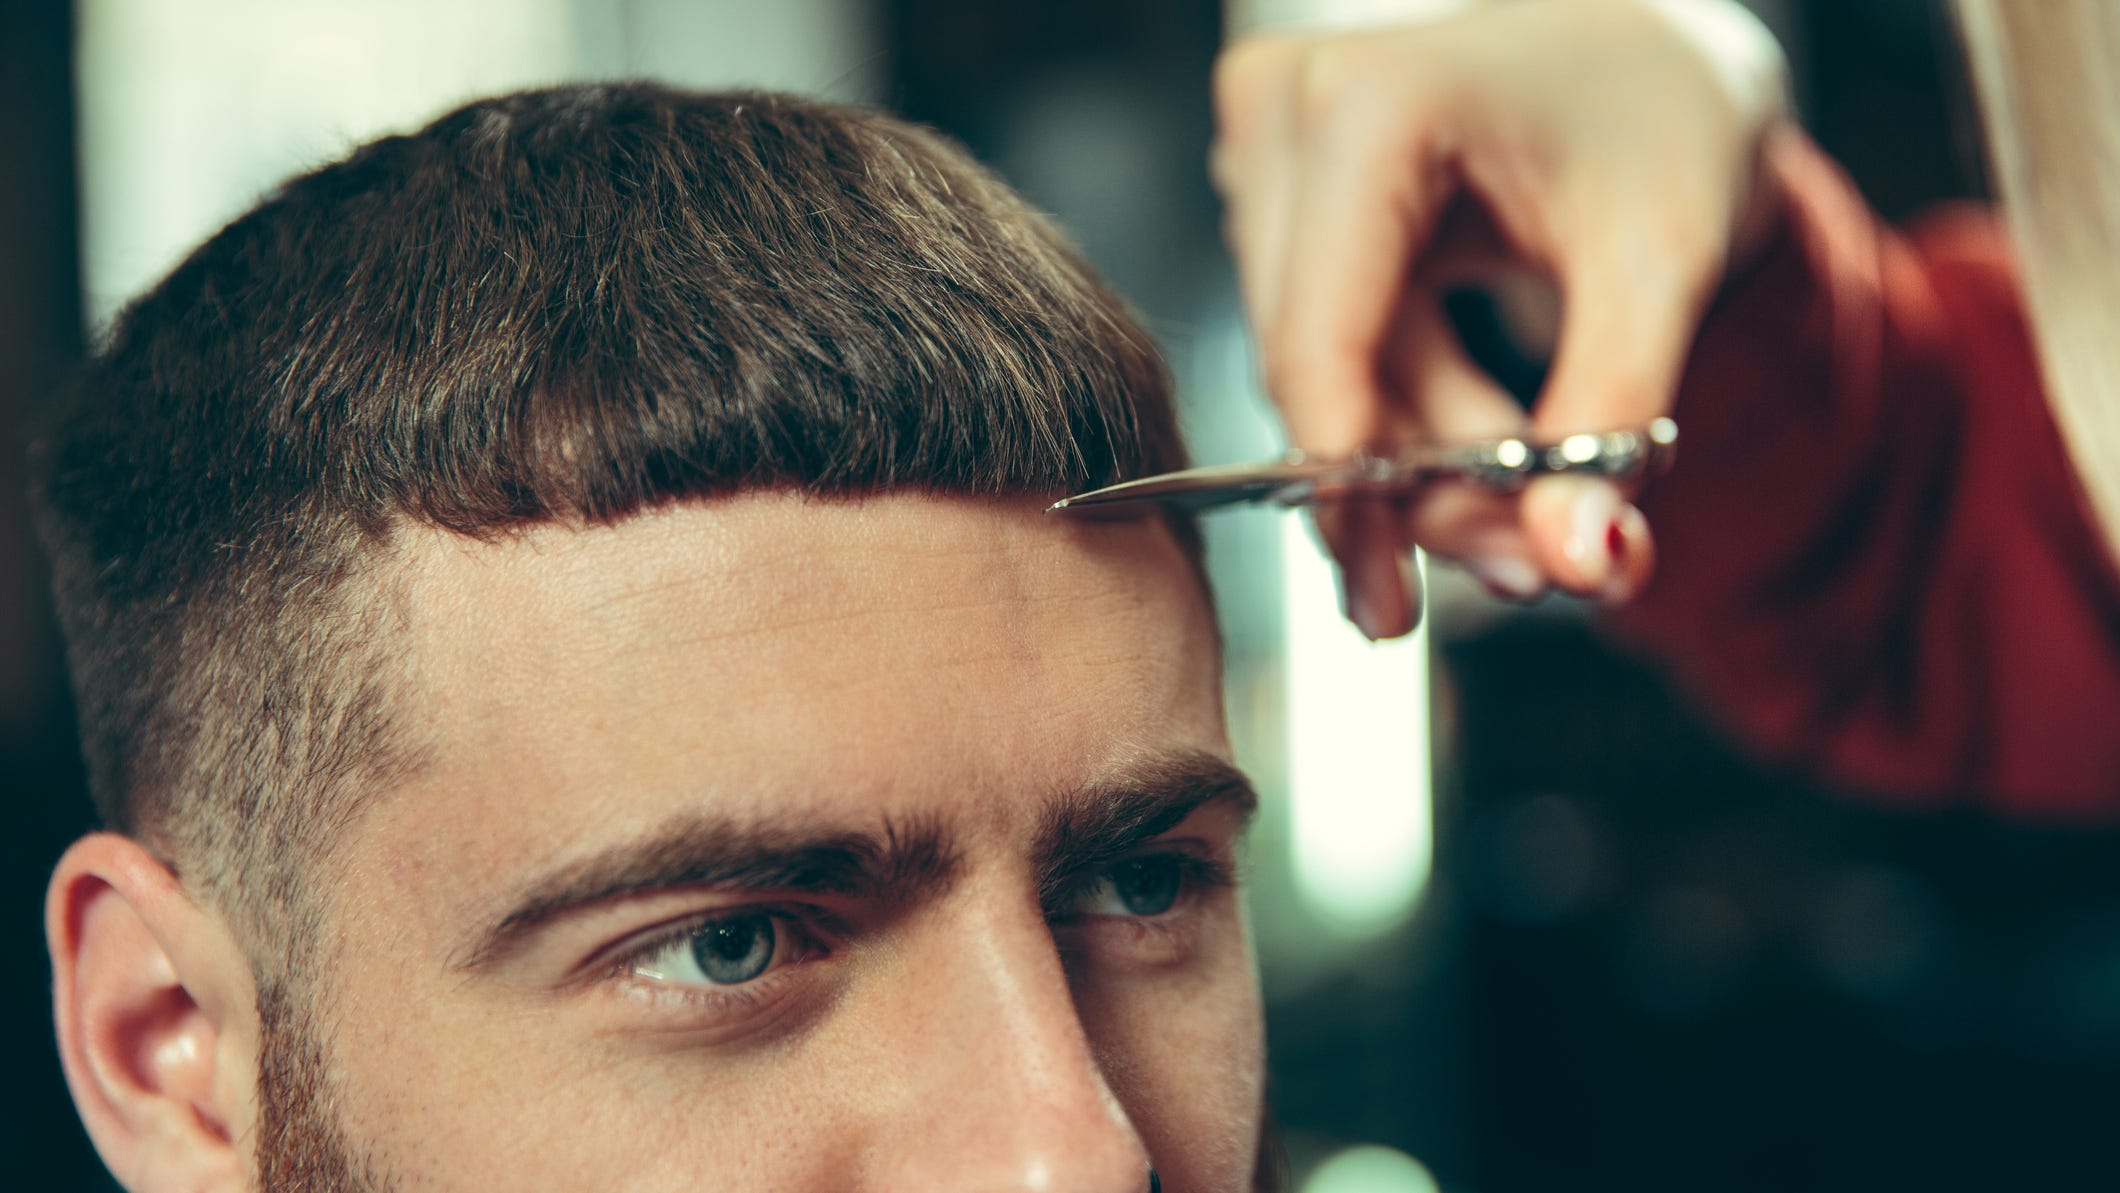 Coronavirus: DIY haircut tips and styling tricks during the lockdown